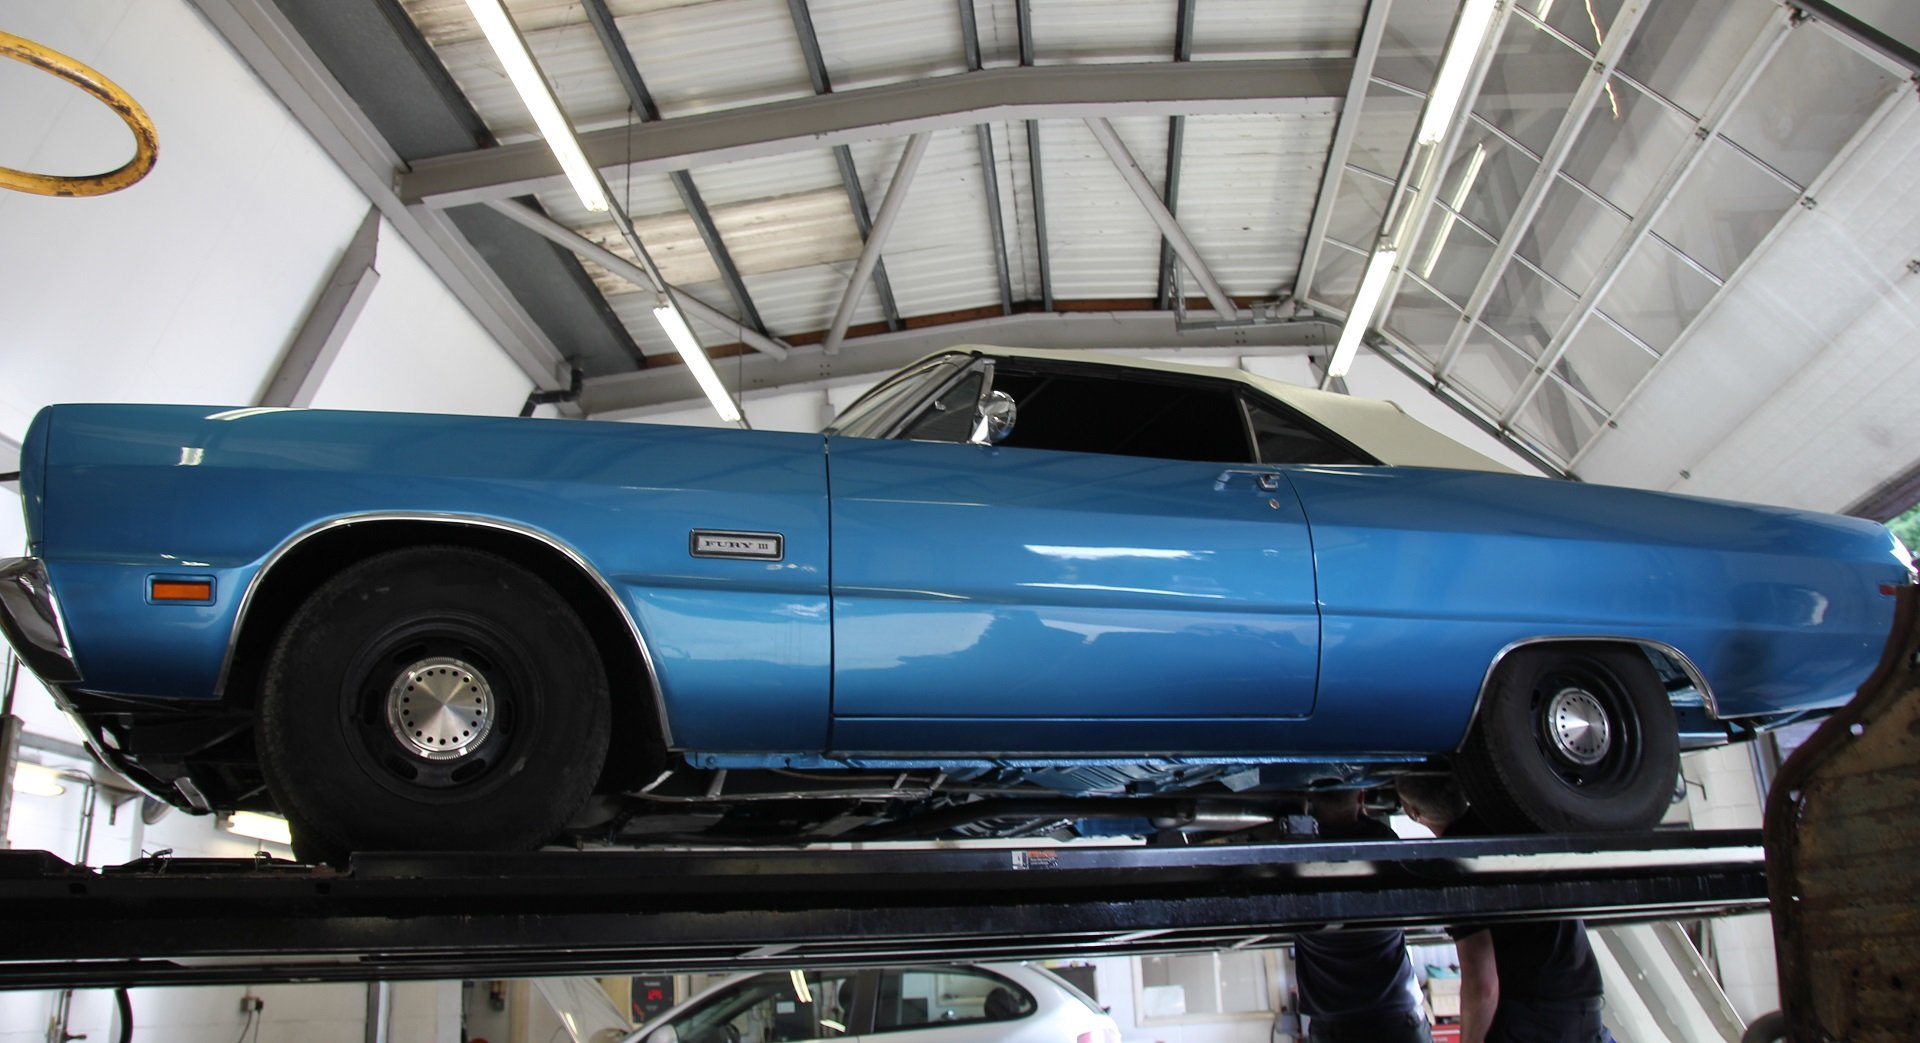 1969 Plymouth Fury III Convertible original blue. For Sale (picture 6 of 6)